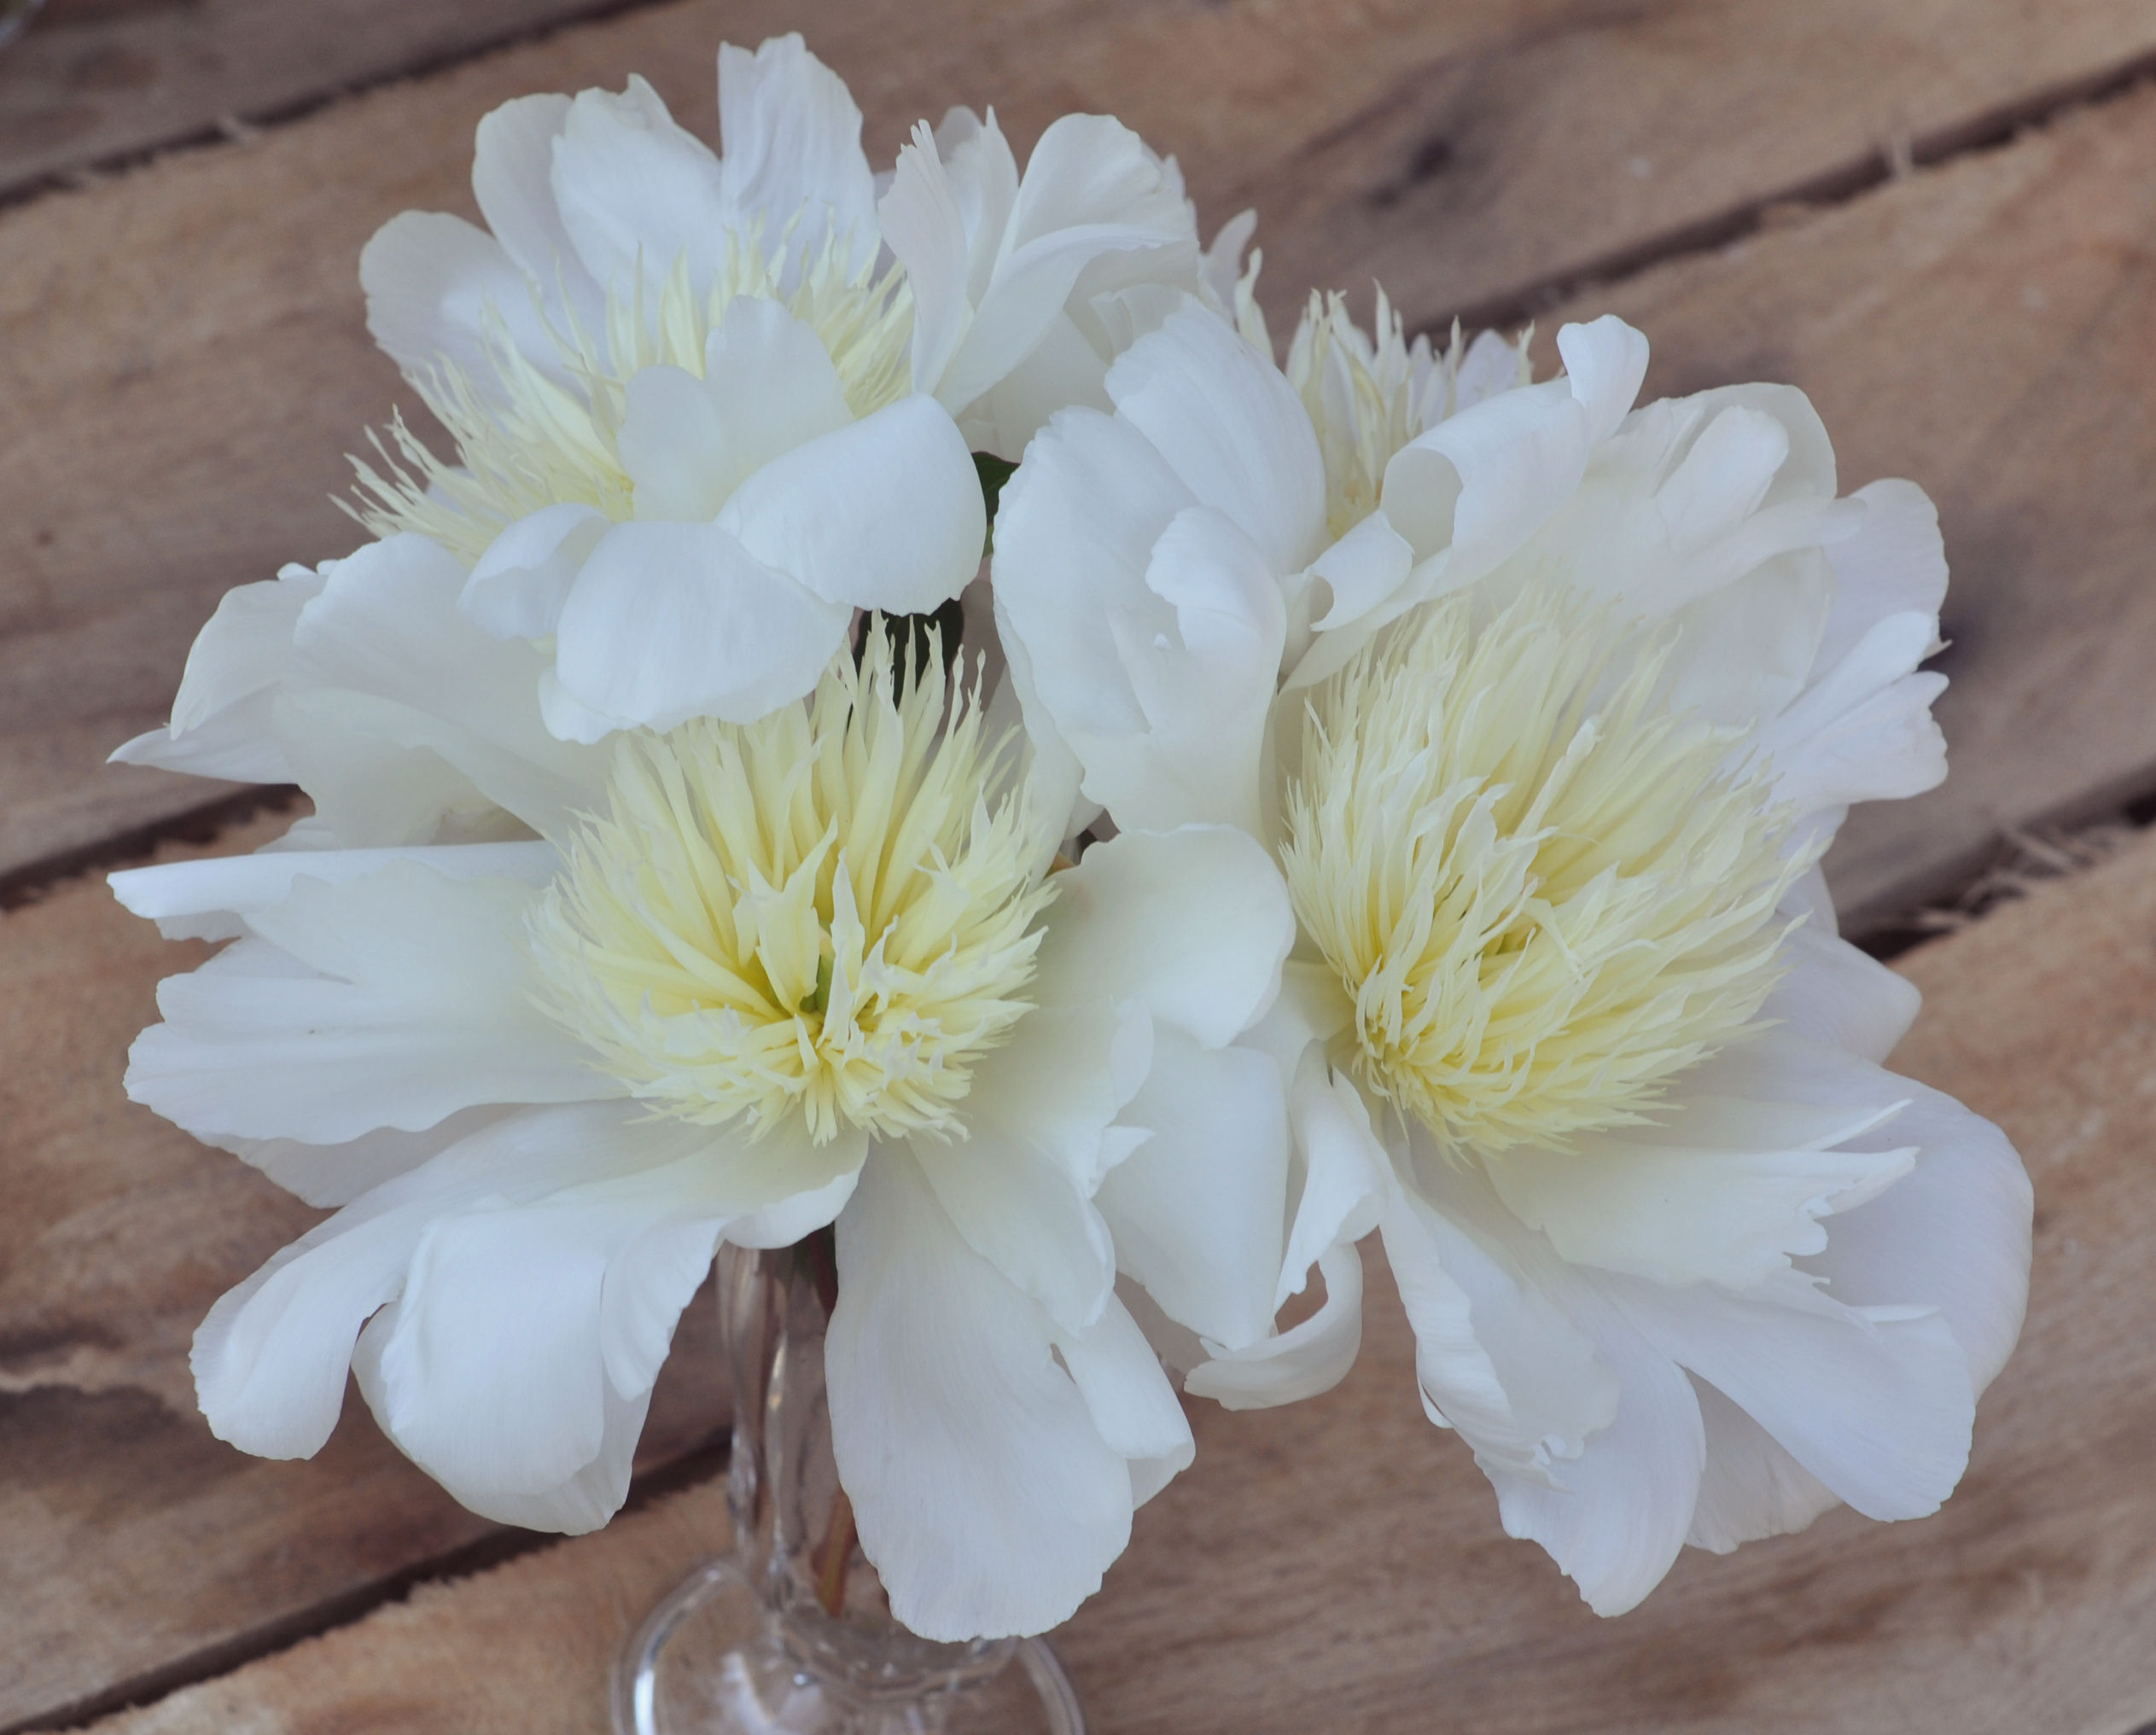 Wholesale peonies alaska peony market summer peonies charlies white has large elegantly formed pure white flowers illuminated by a golden glow at the base of the petals has a lovely fragrance mightylinksfo